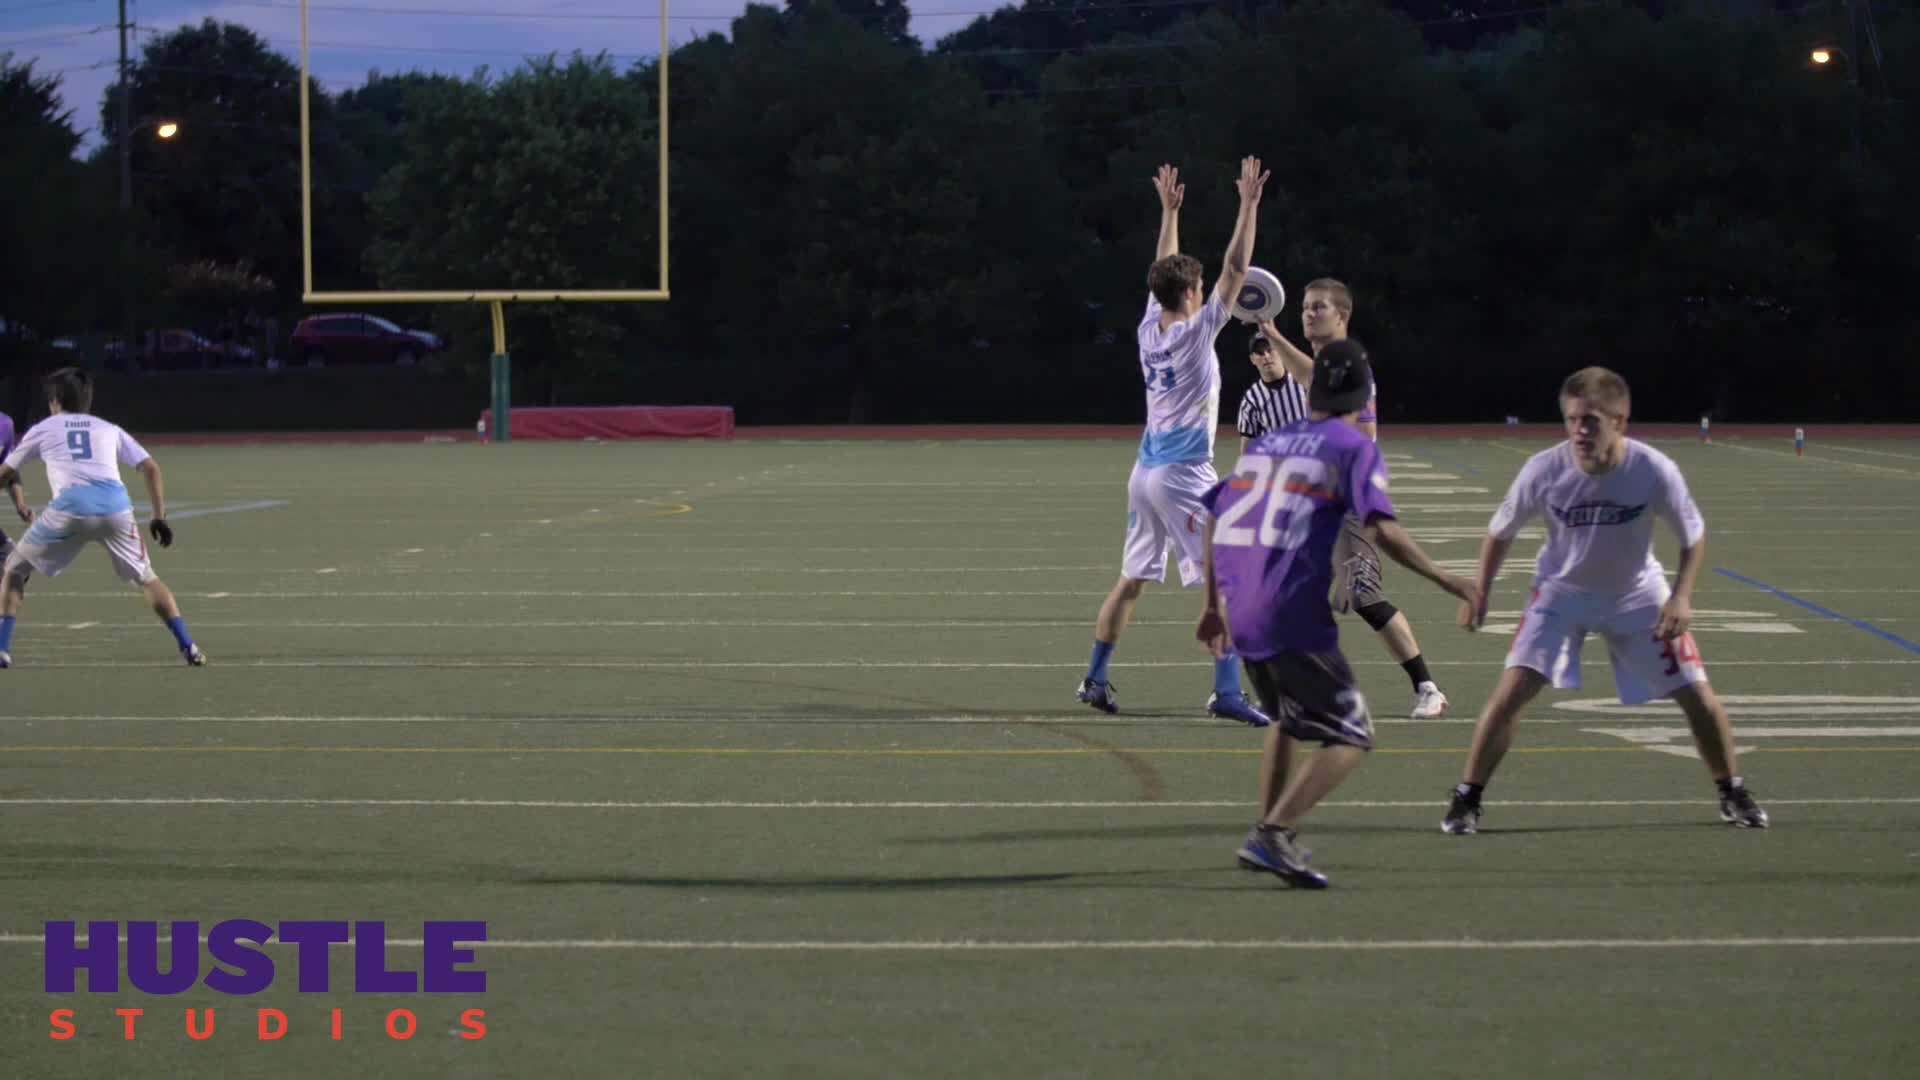 american ultimate disc league, audl, ultimate, ultimate frisbee, Matt Smith Cutting GIFs